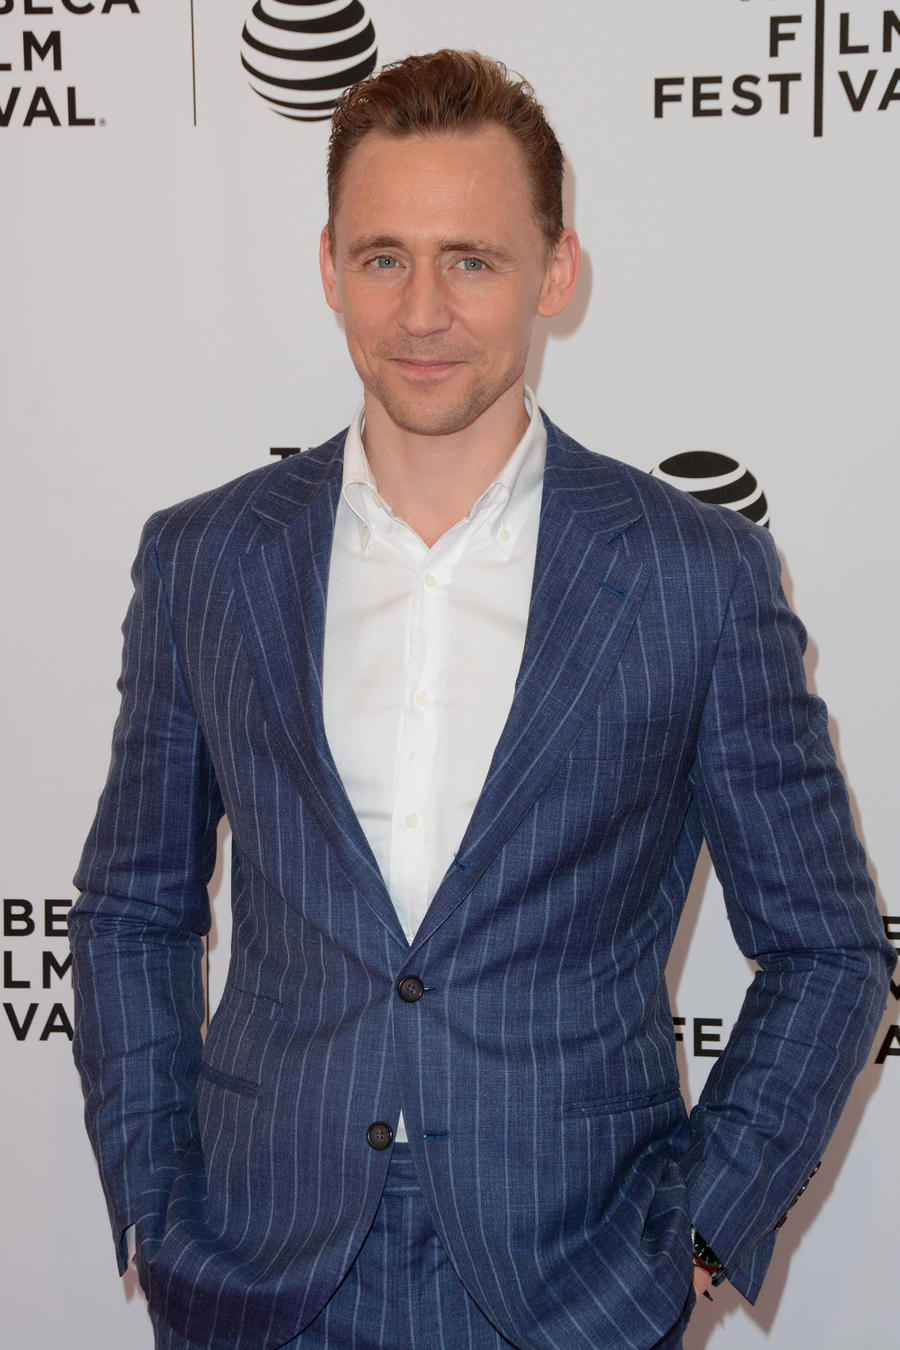 Tom Hiddleston Joins Instagram With Loki Snap